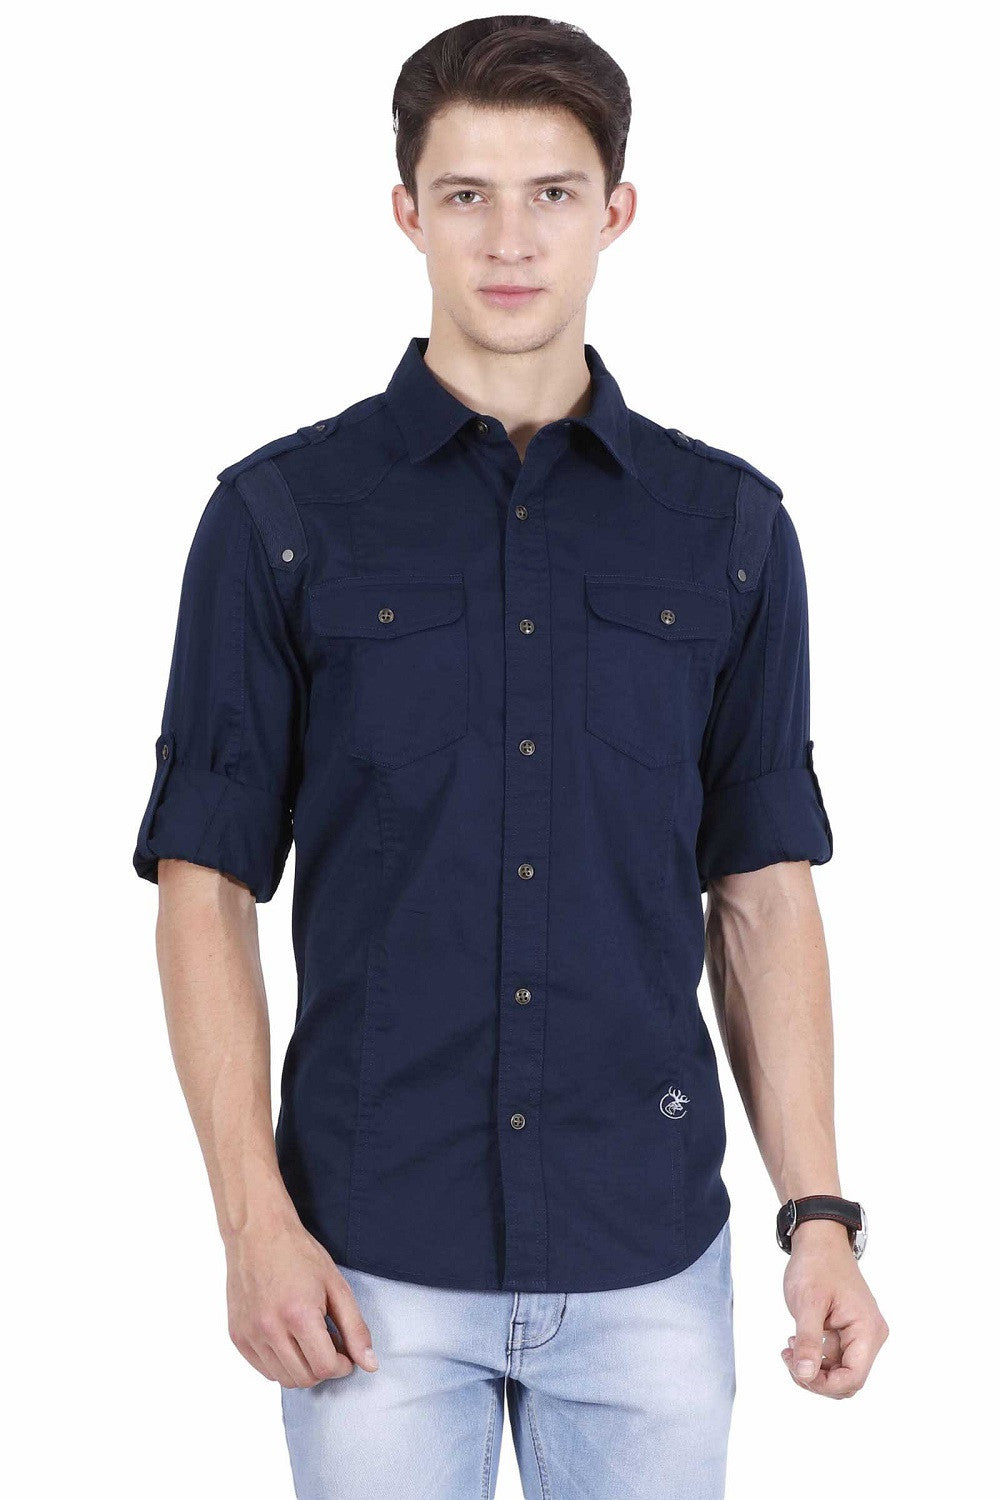 Hunt and Howe Navy Blue Casual Shirt